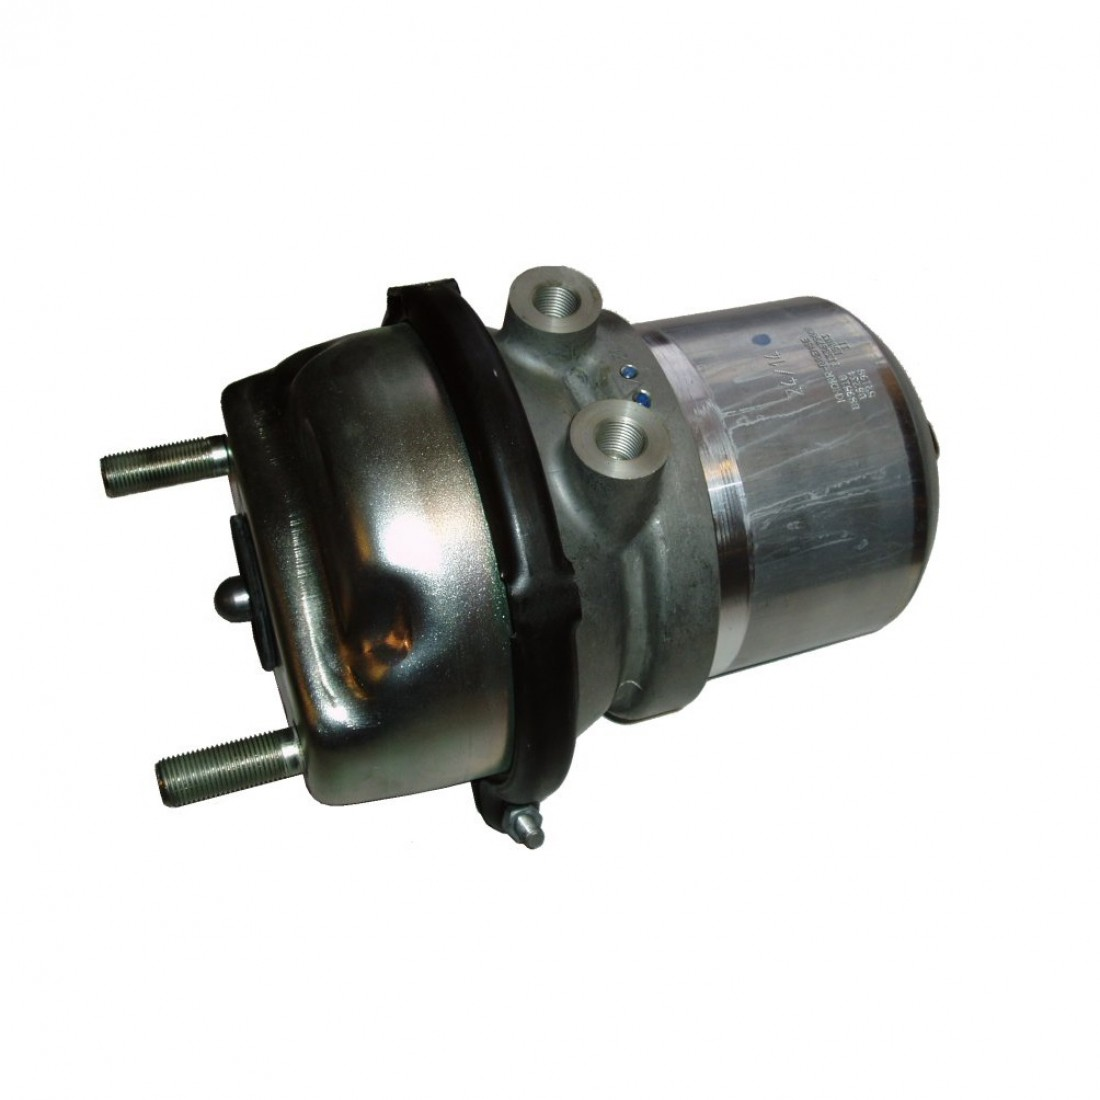 Spring Brake Cylinder, Right replaces Knorr: K018094 / T 24/14